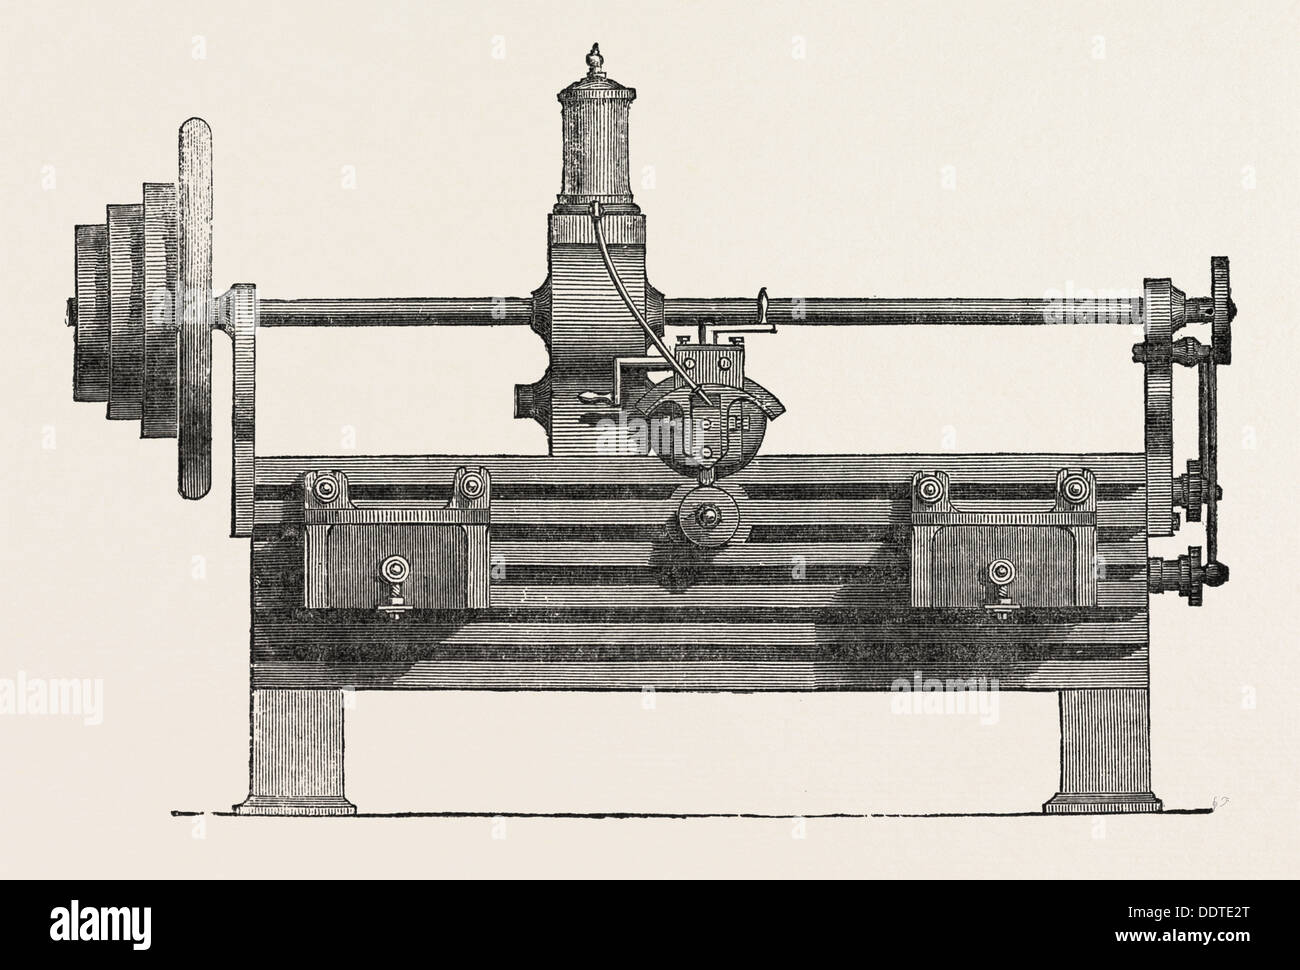 PARR, CURTIS, AND MADELEY'S PLANING MACHINE, 1851 engraving - Stock Image